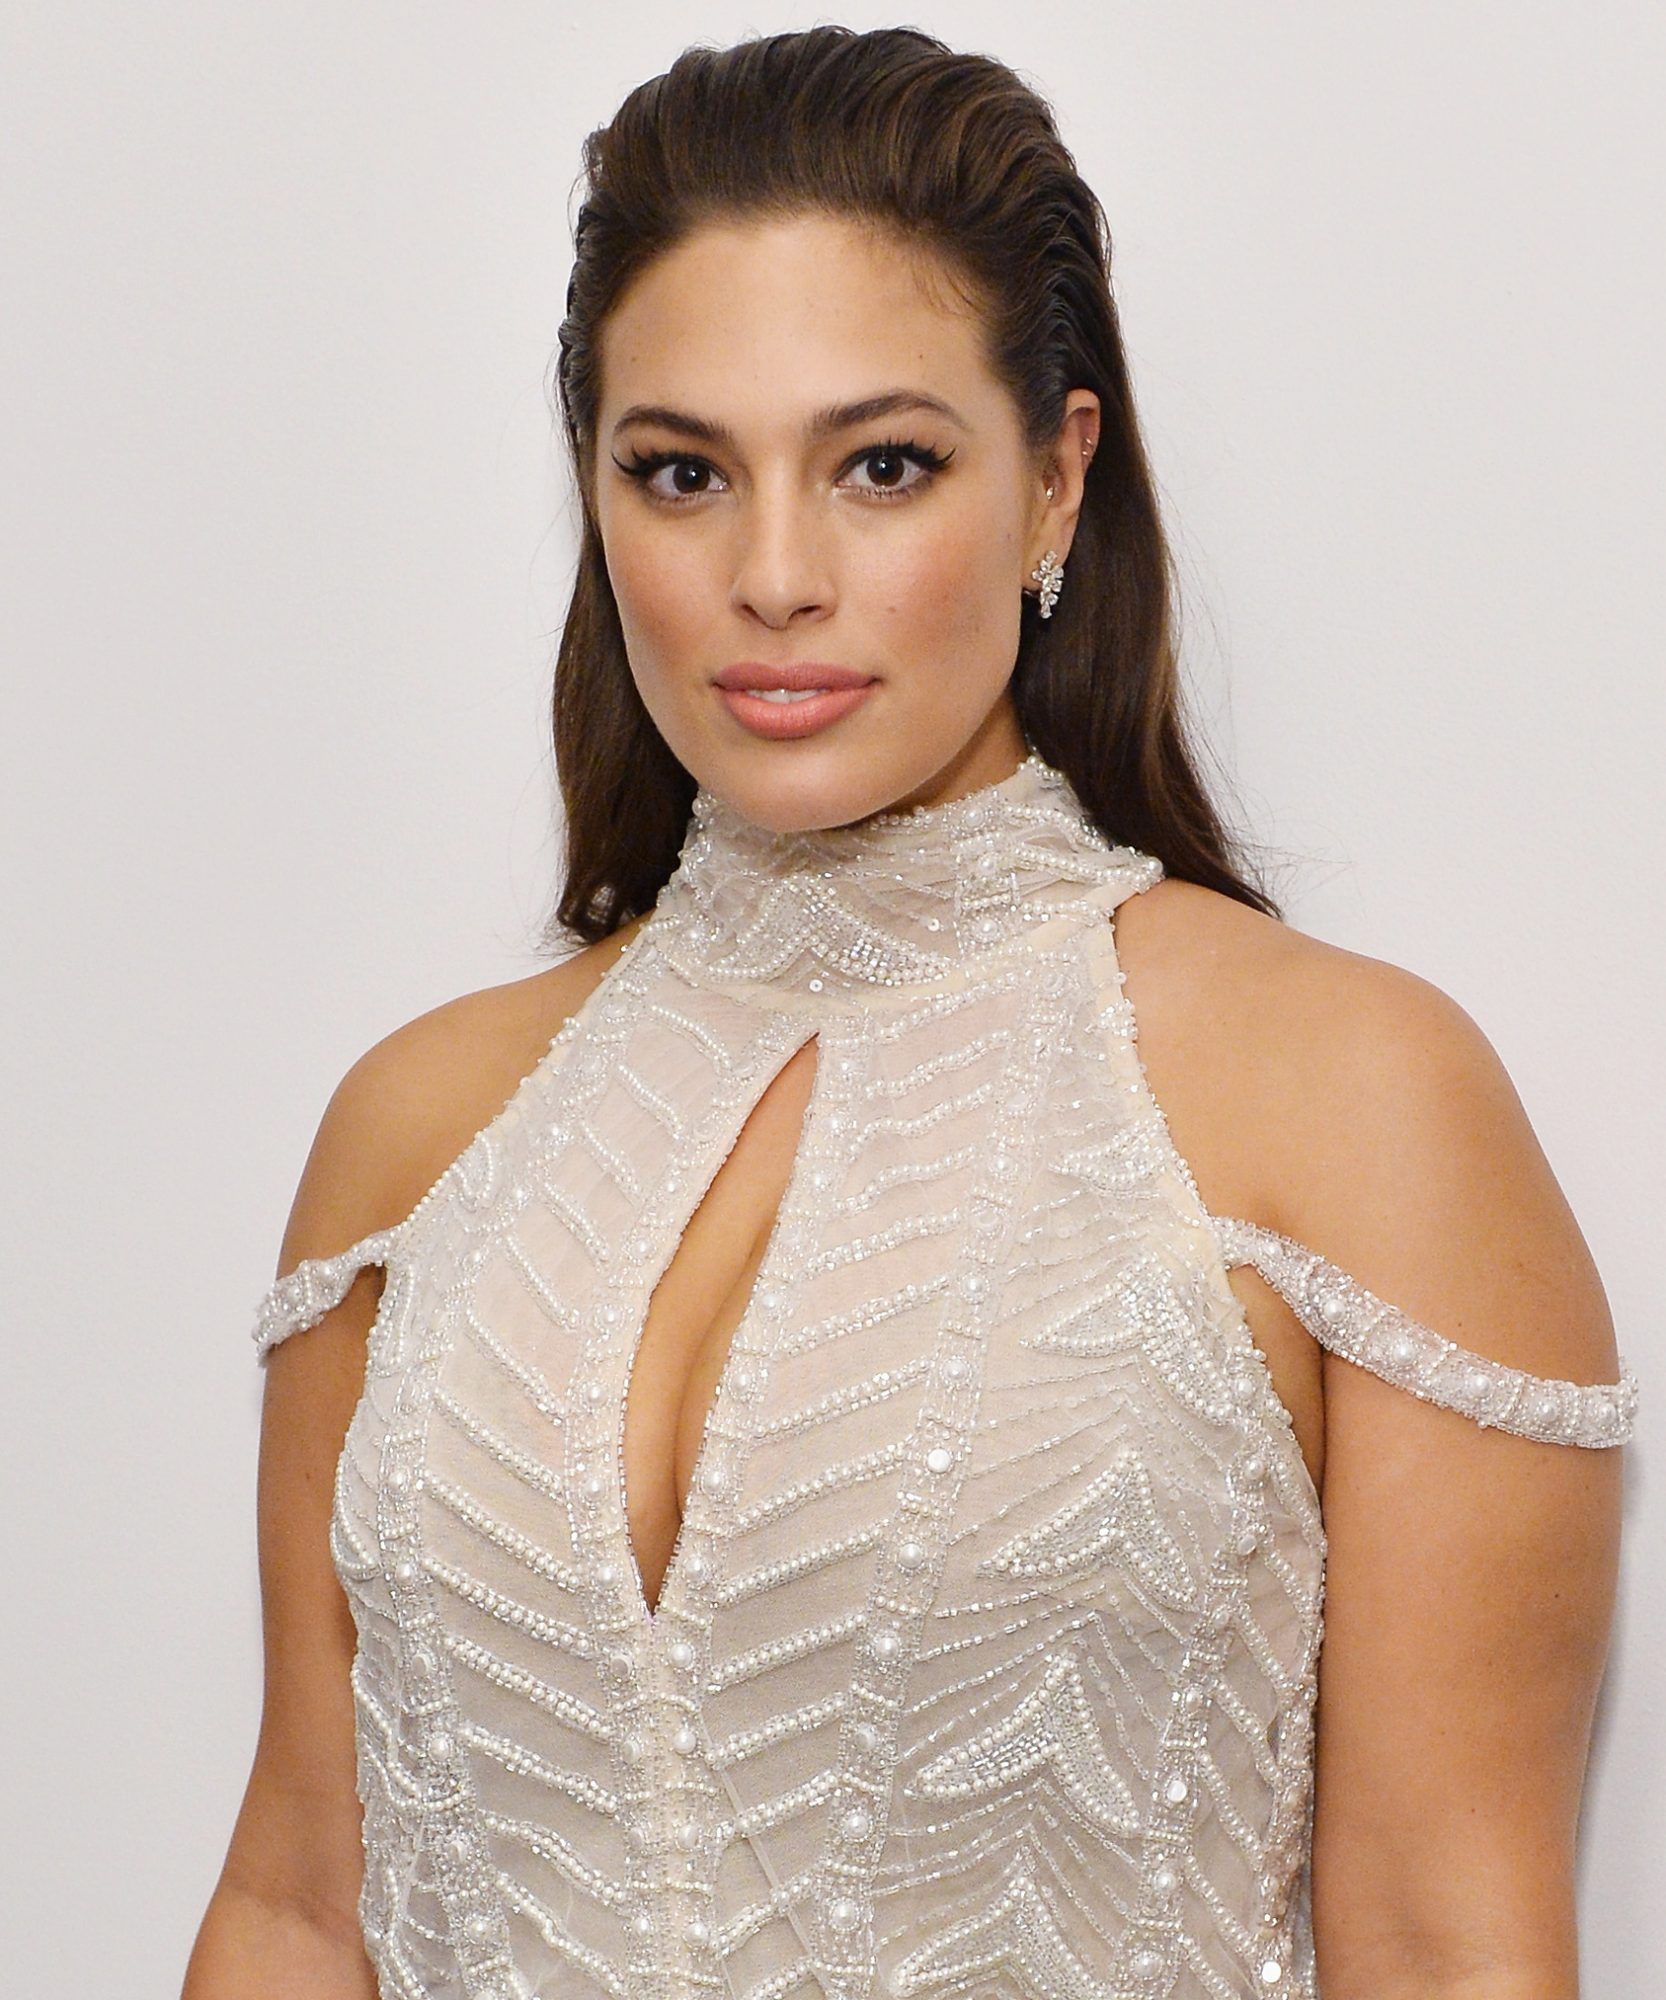 Blue Shades Ashley Graham Gets Her Own Barbie Ashley Graham Body